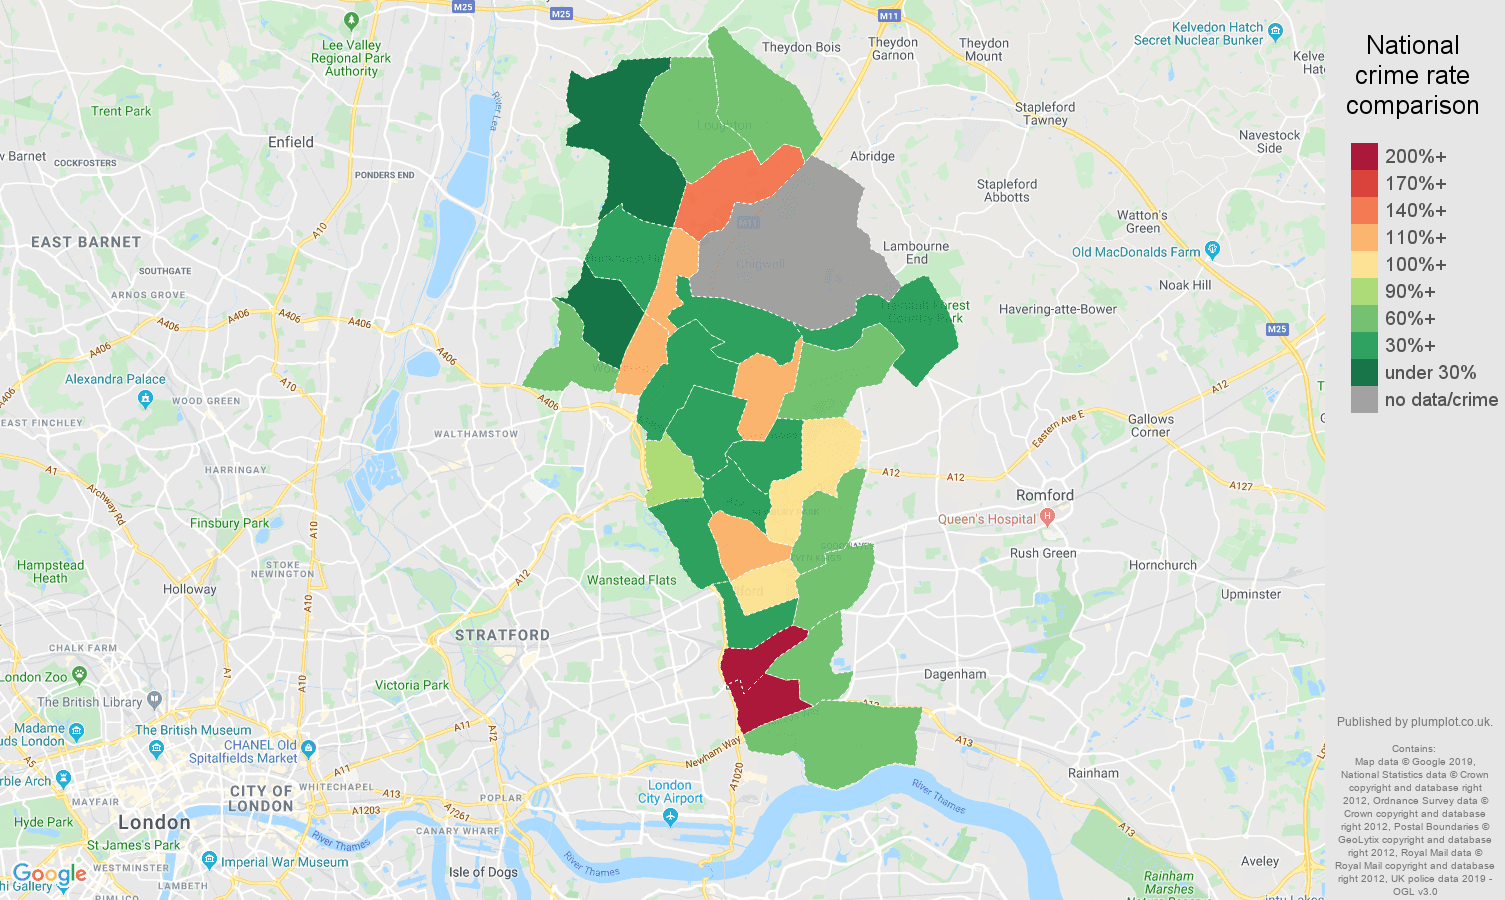 Ilford possession of weapons crime rate comparison map